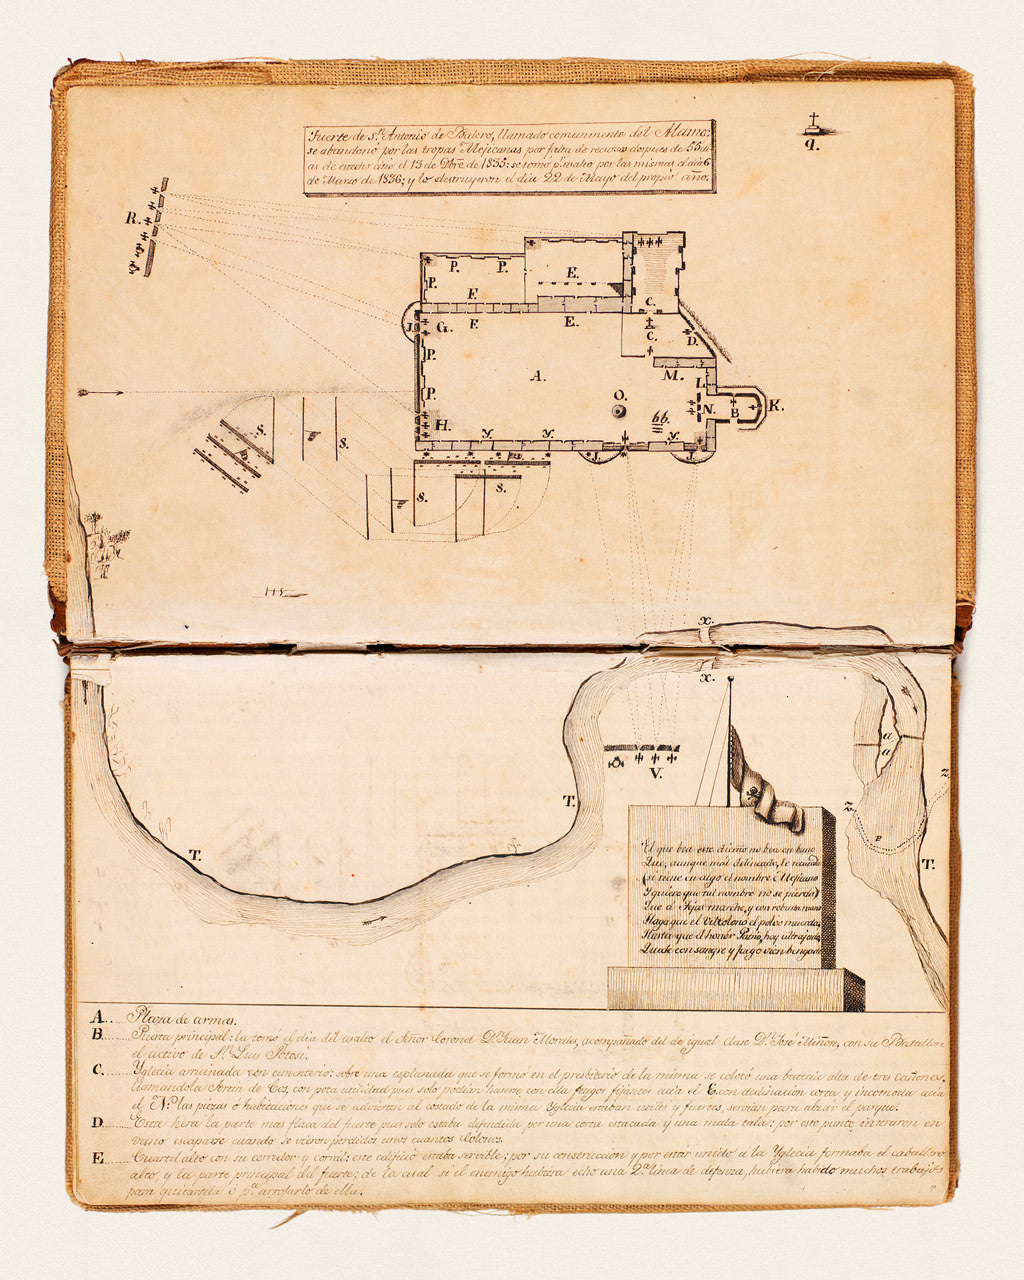 Texas, 1836, Alamo, Manuscript Plan, Texas Revolution | Battlemaps.us